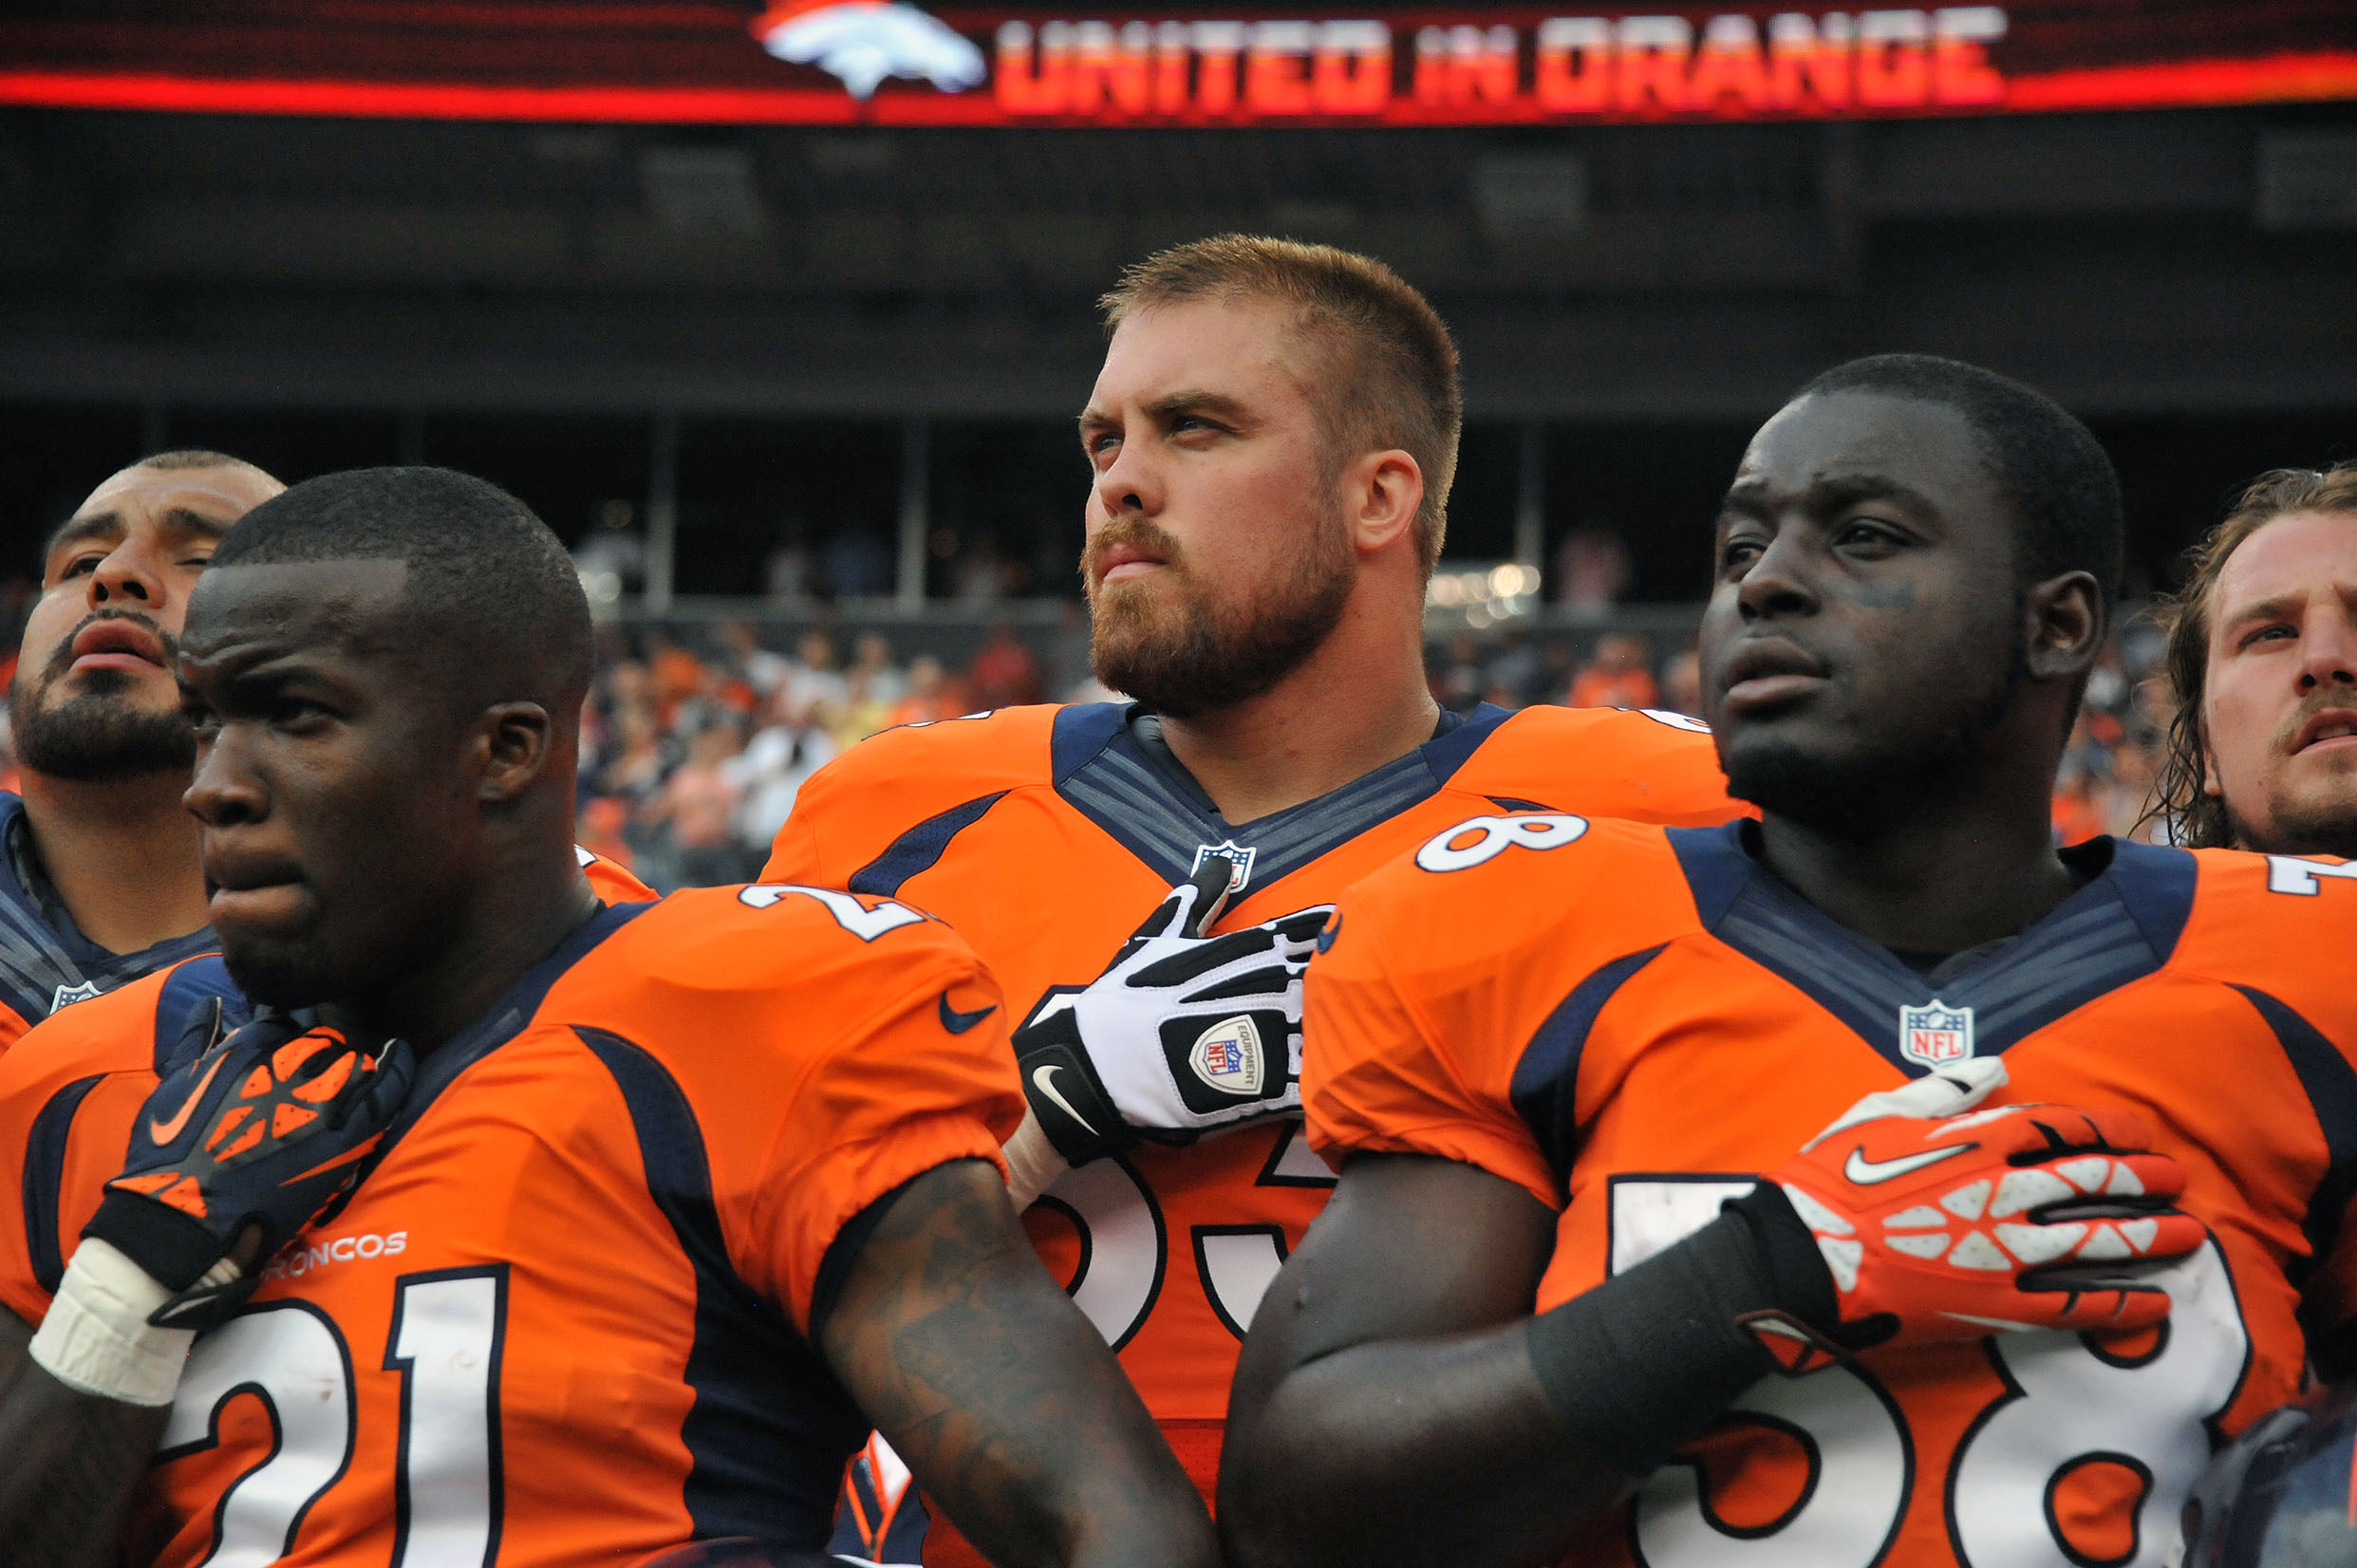 File:Ronnie Hillman, Ben Garland and Montee Ball listen to ...